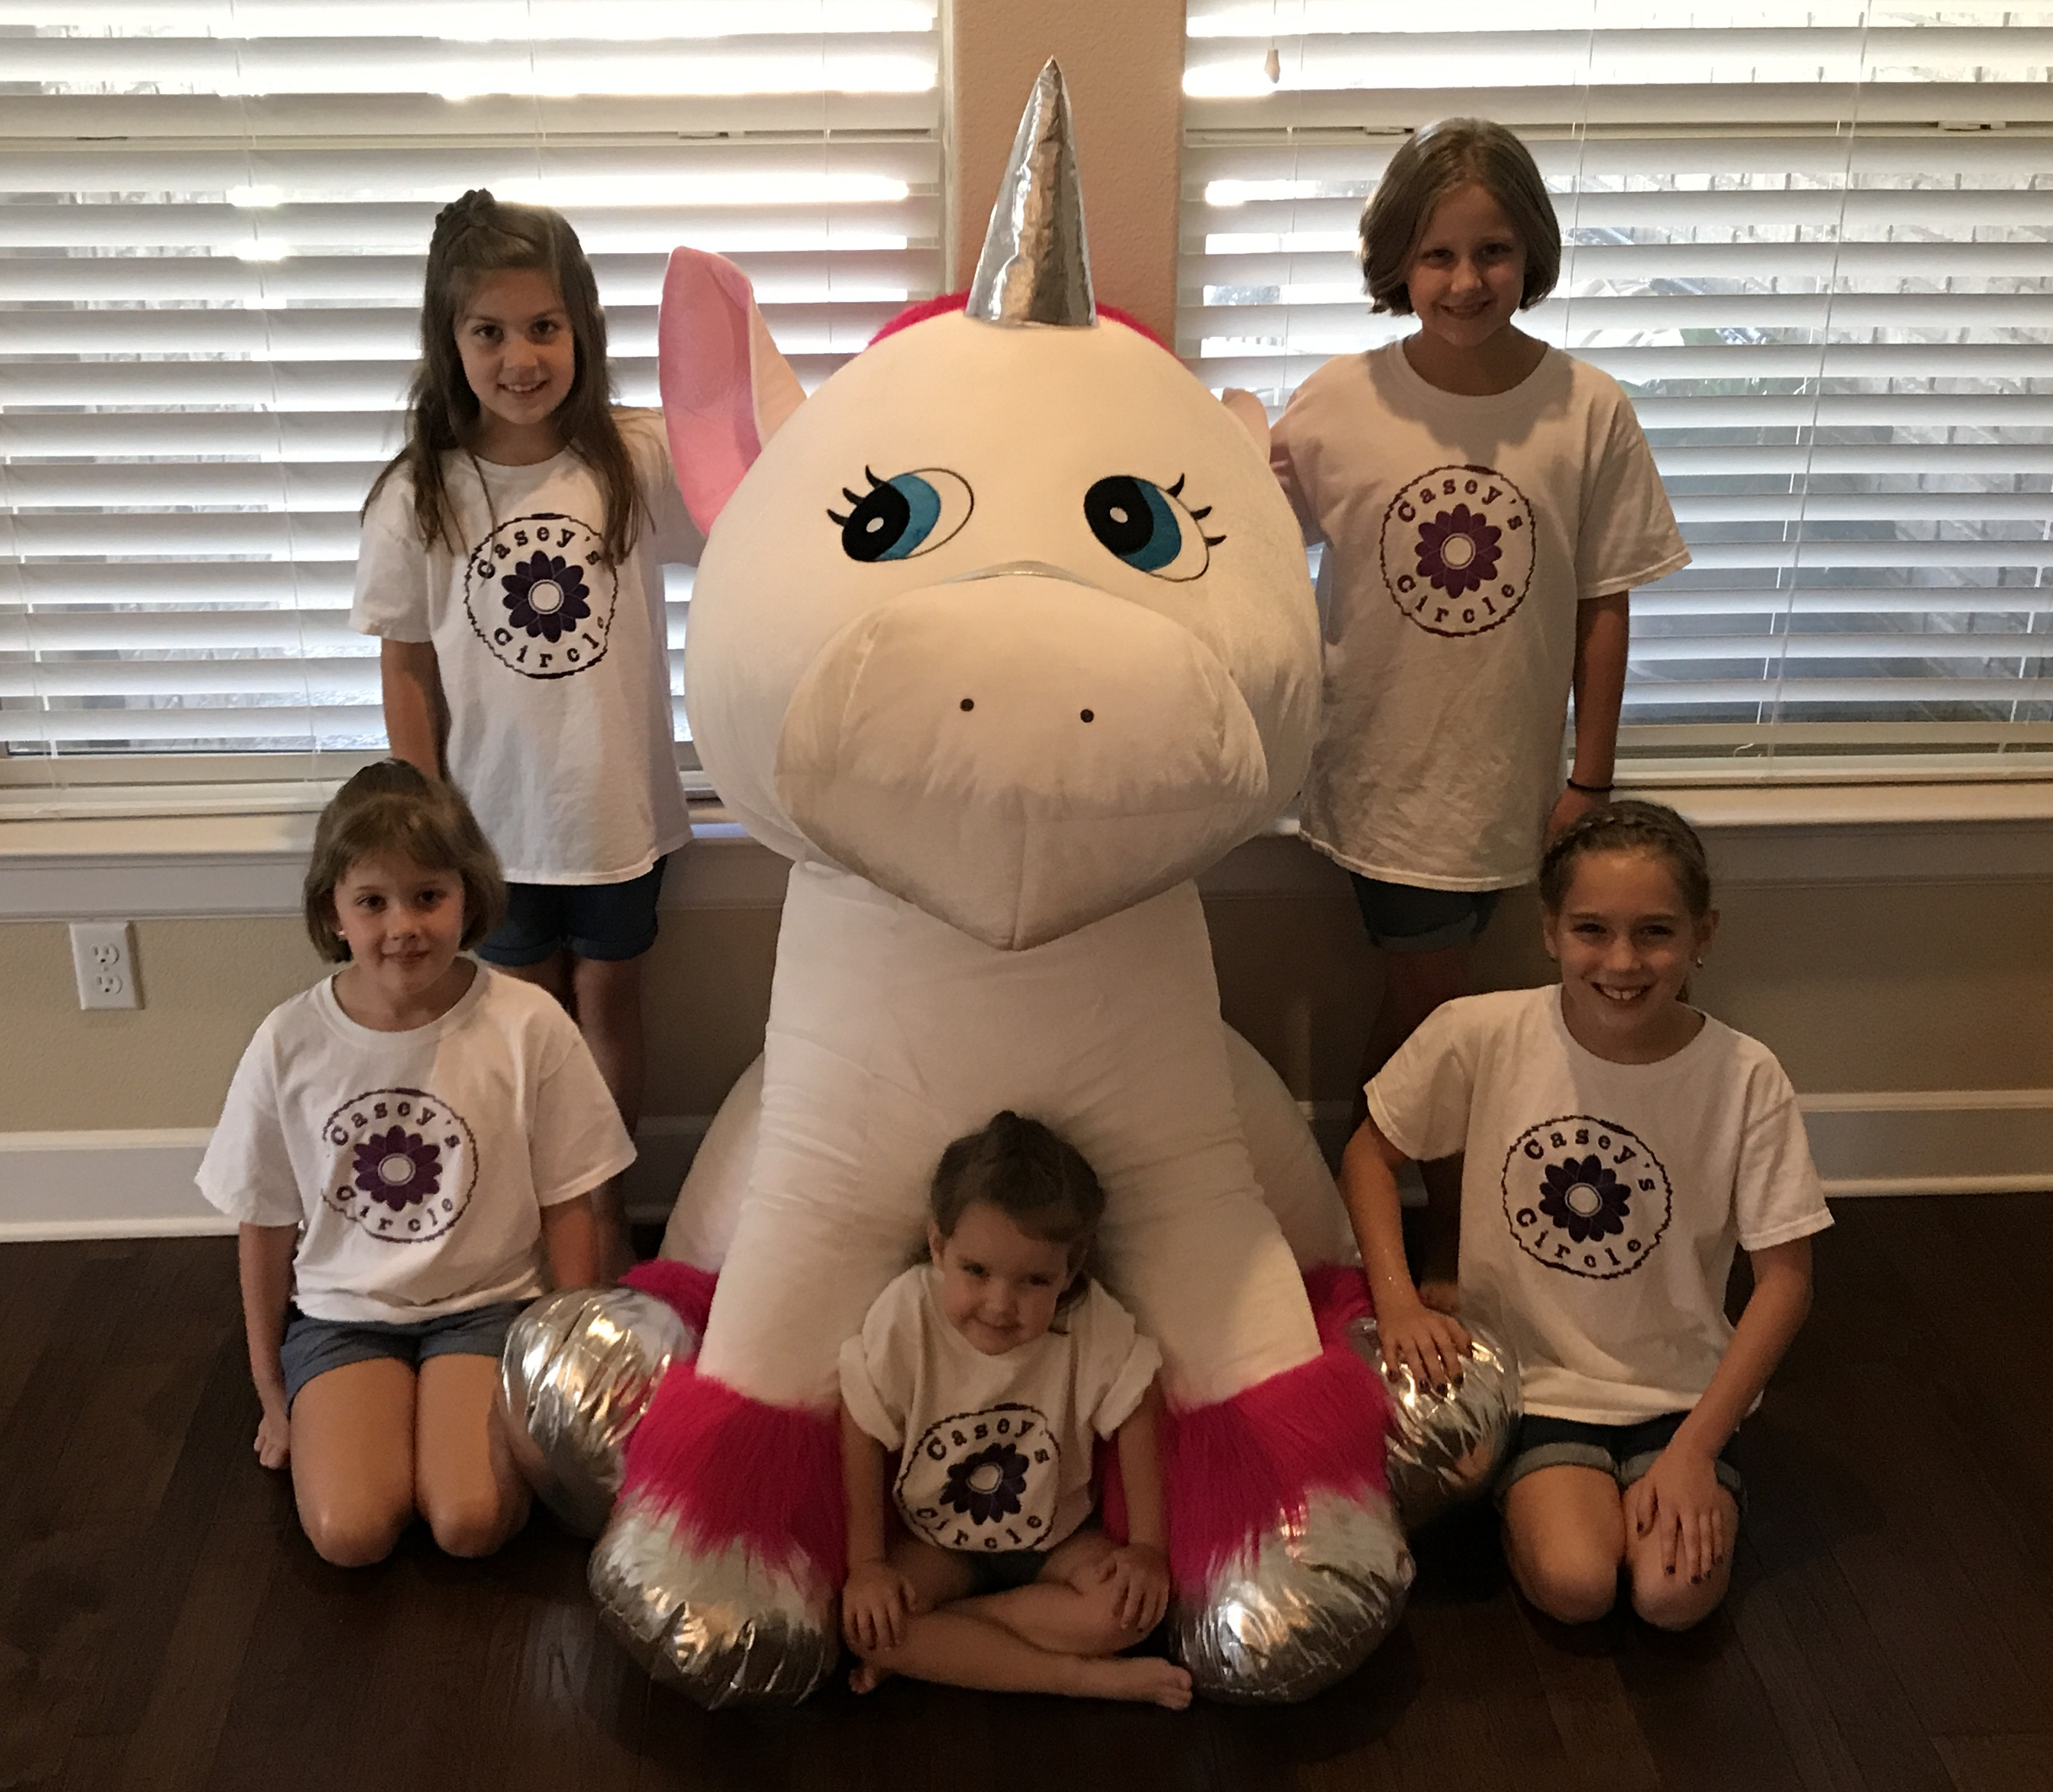 Aubrey and Taylor from Dallas donated an AMAZING stuffed unicorn. This unicorn stands over 4 feet tall has a shiny silver horn and fluffy pink mane.  sc 1 st  Caseyu0027s Circle & Halloween Costume Giveaway u0026 Raffle u2013 Caseyu0027s Circle